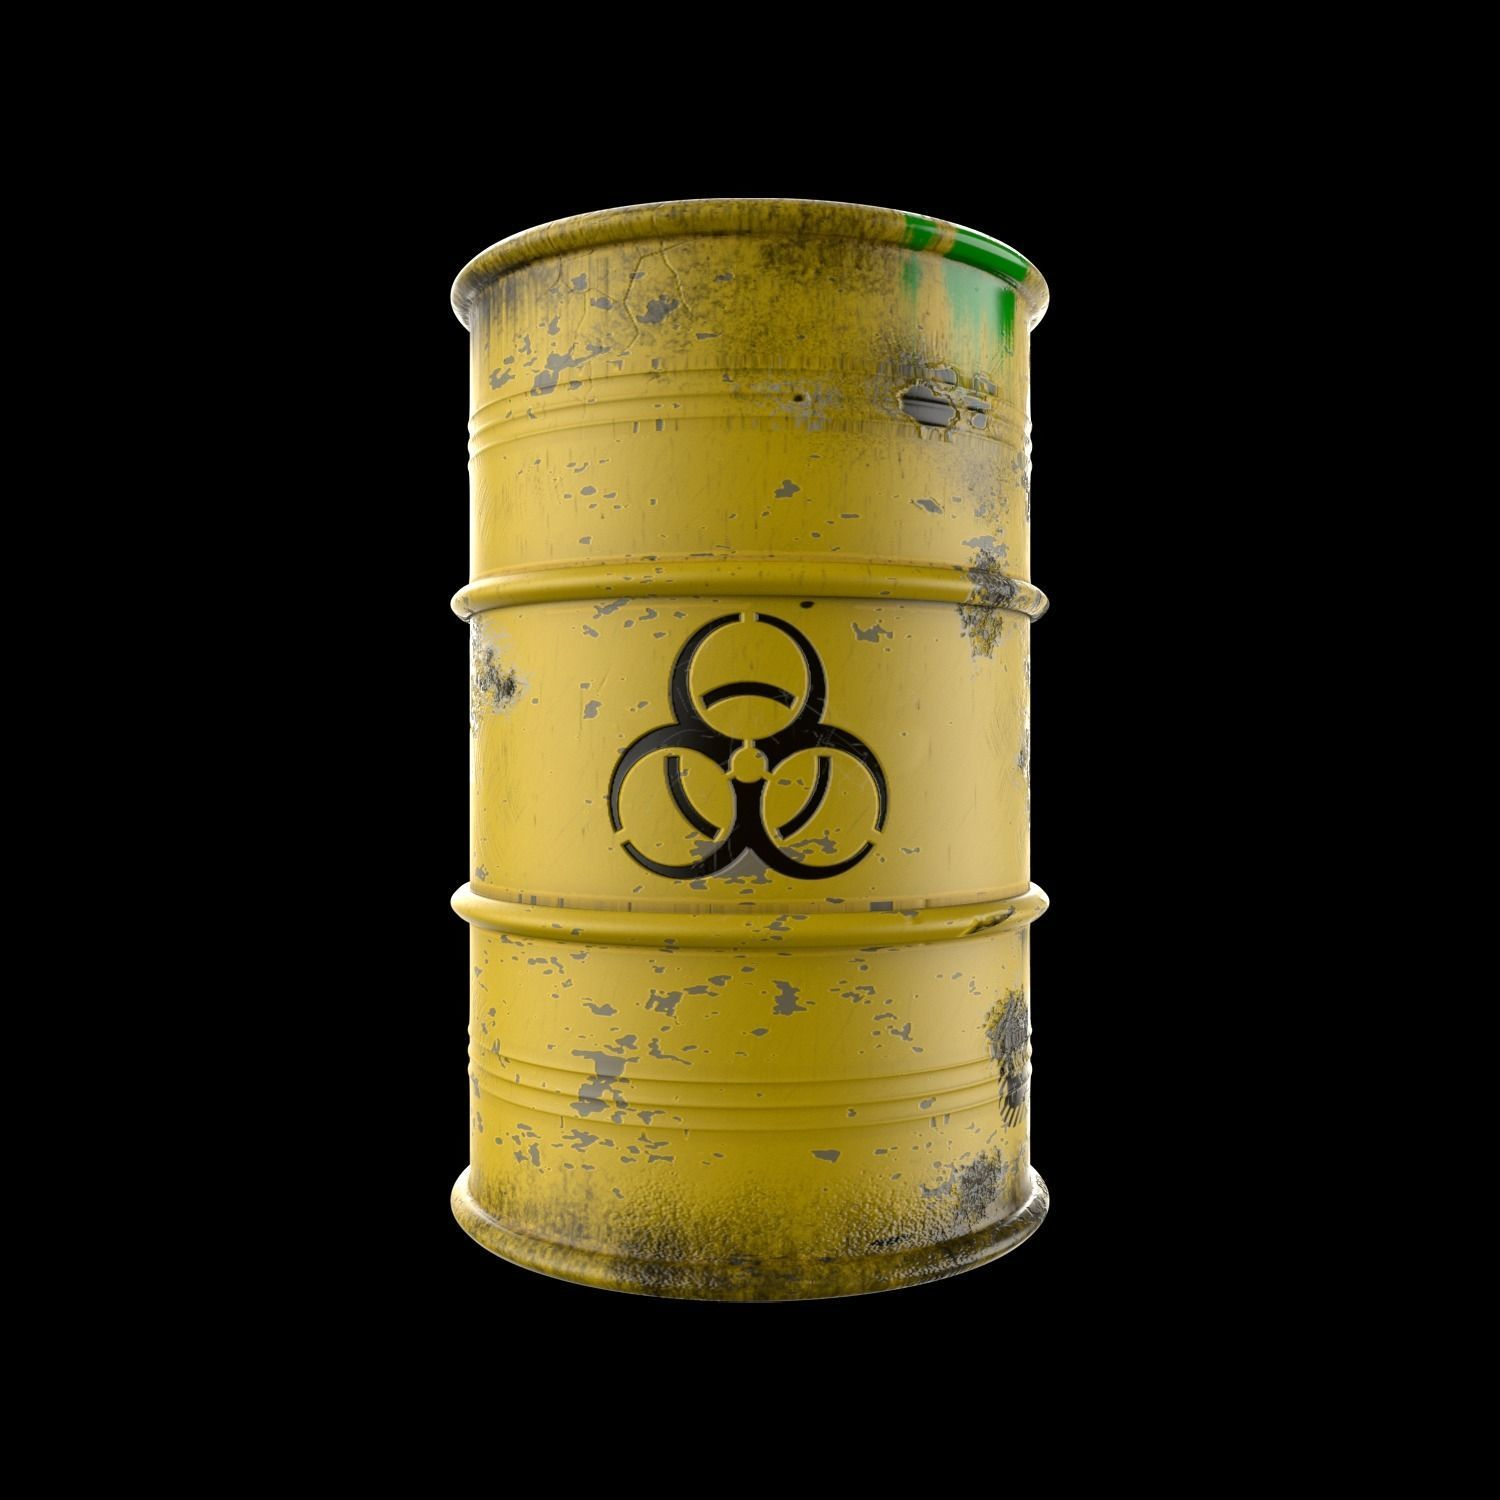 Atomic Waste Barrel